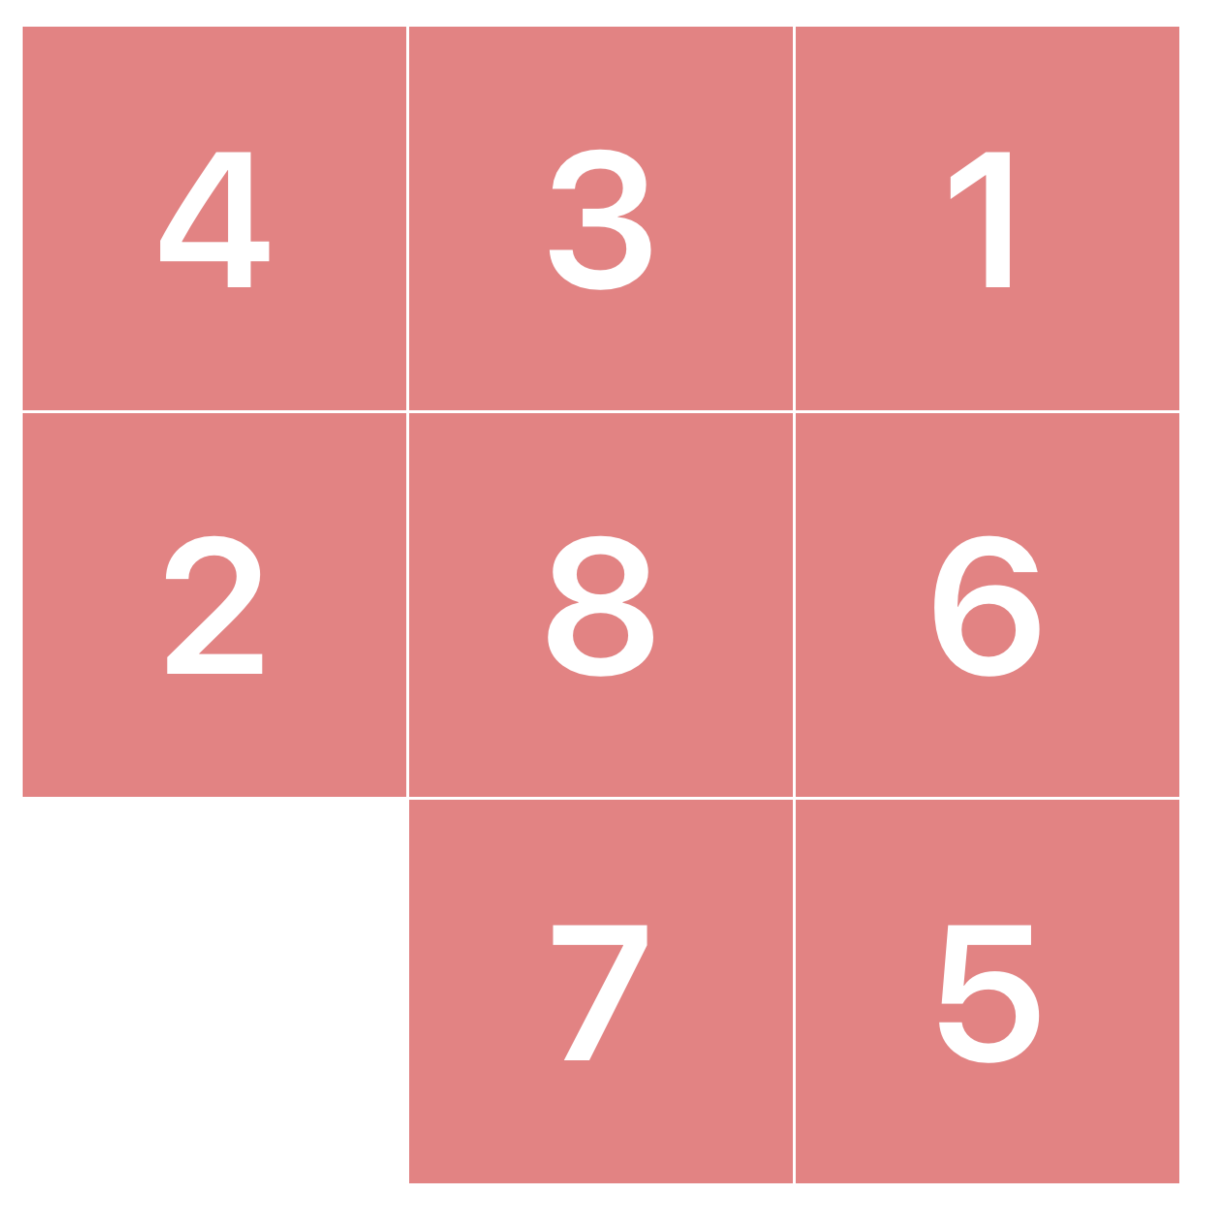 Sliding Puzzle - Solving Search Problem with Iterative